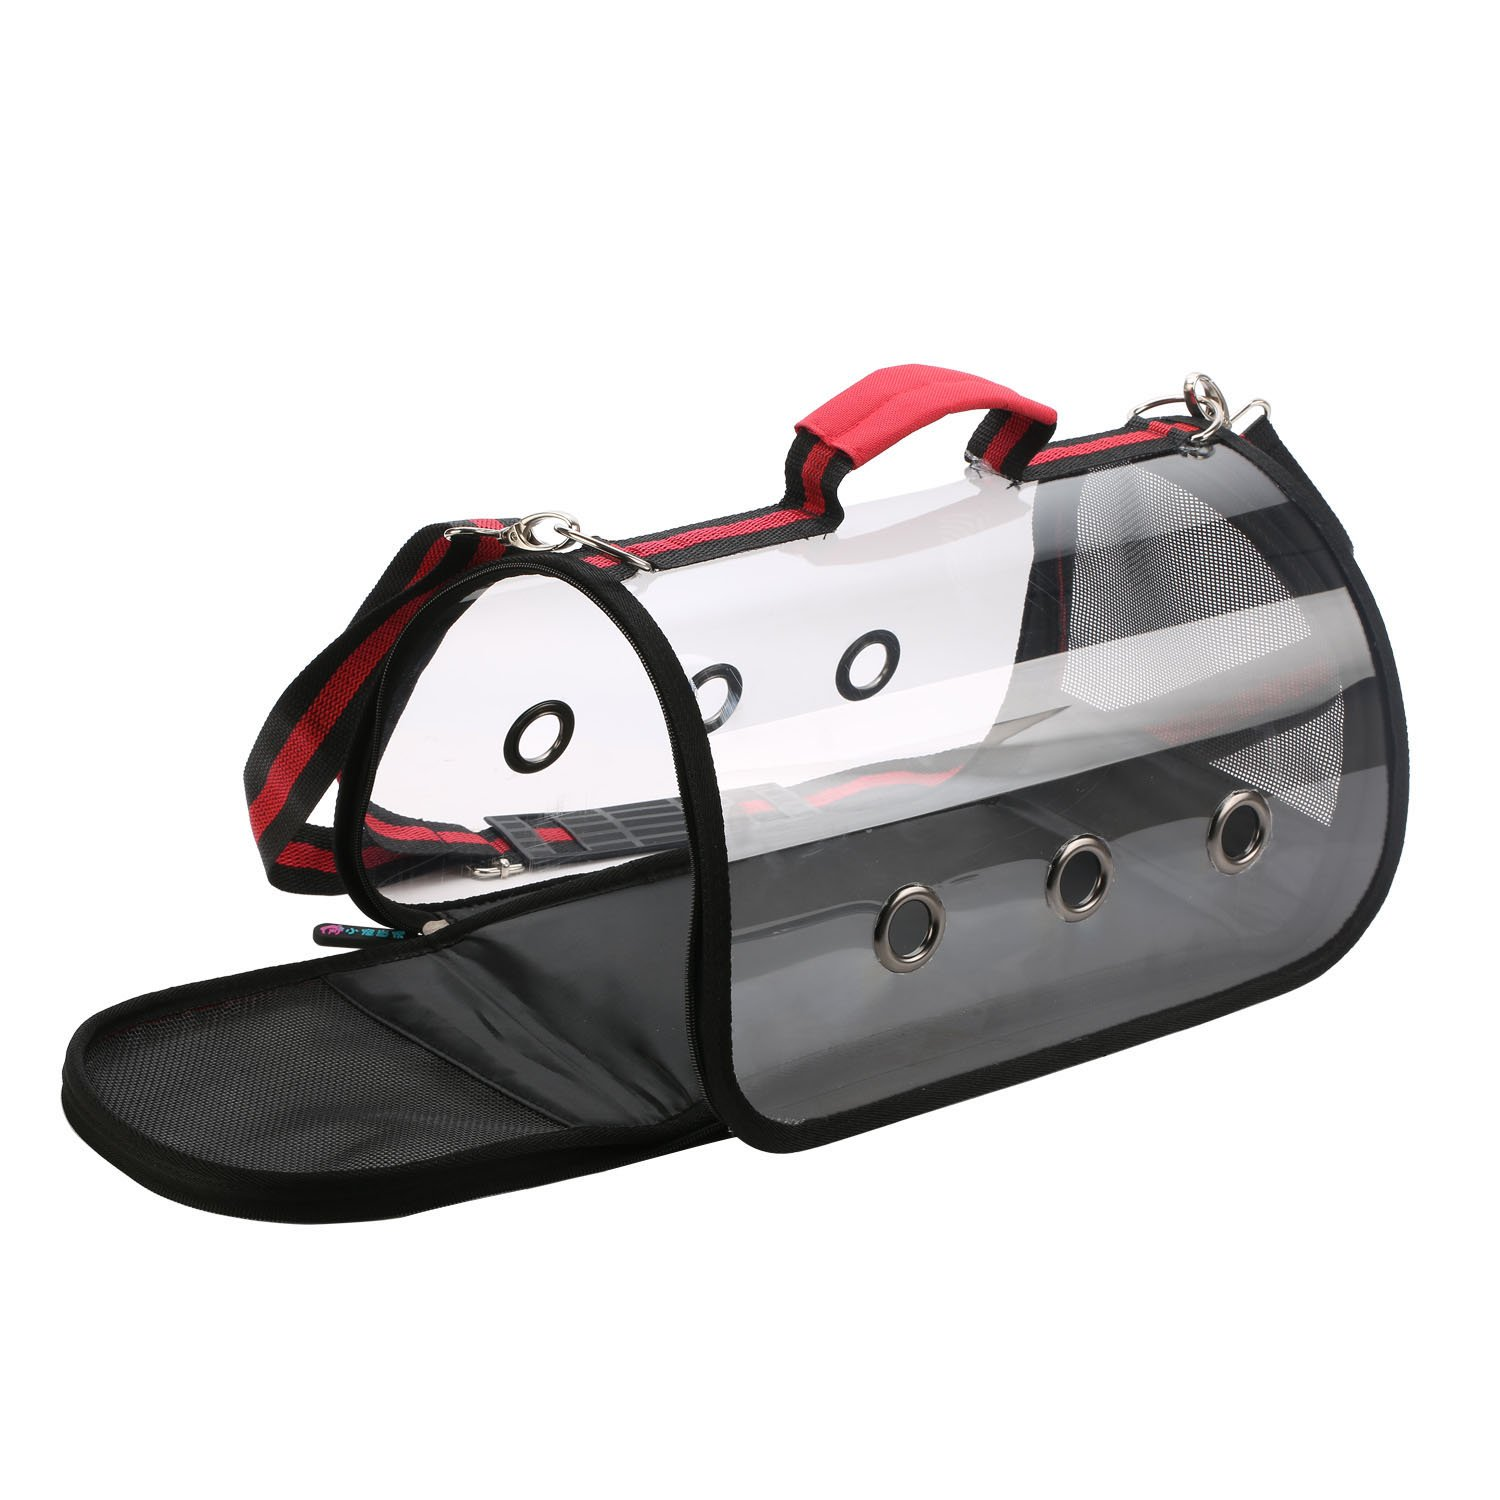 LittleTiger Portable Pet Bags, Pet Travel Carrier for Small Dogs and Cats, Foldable Pets Tote Crate Handbag (S, Red)